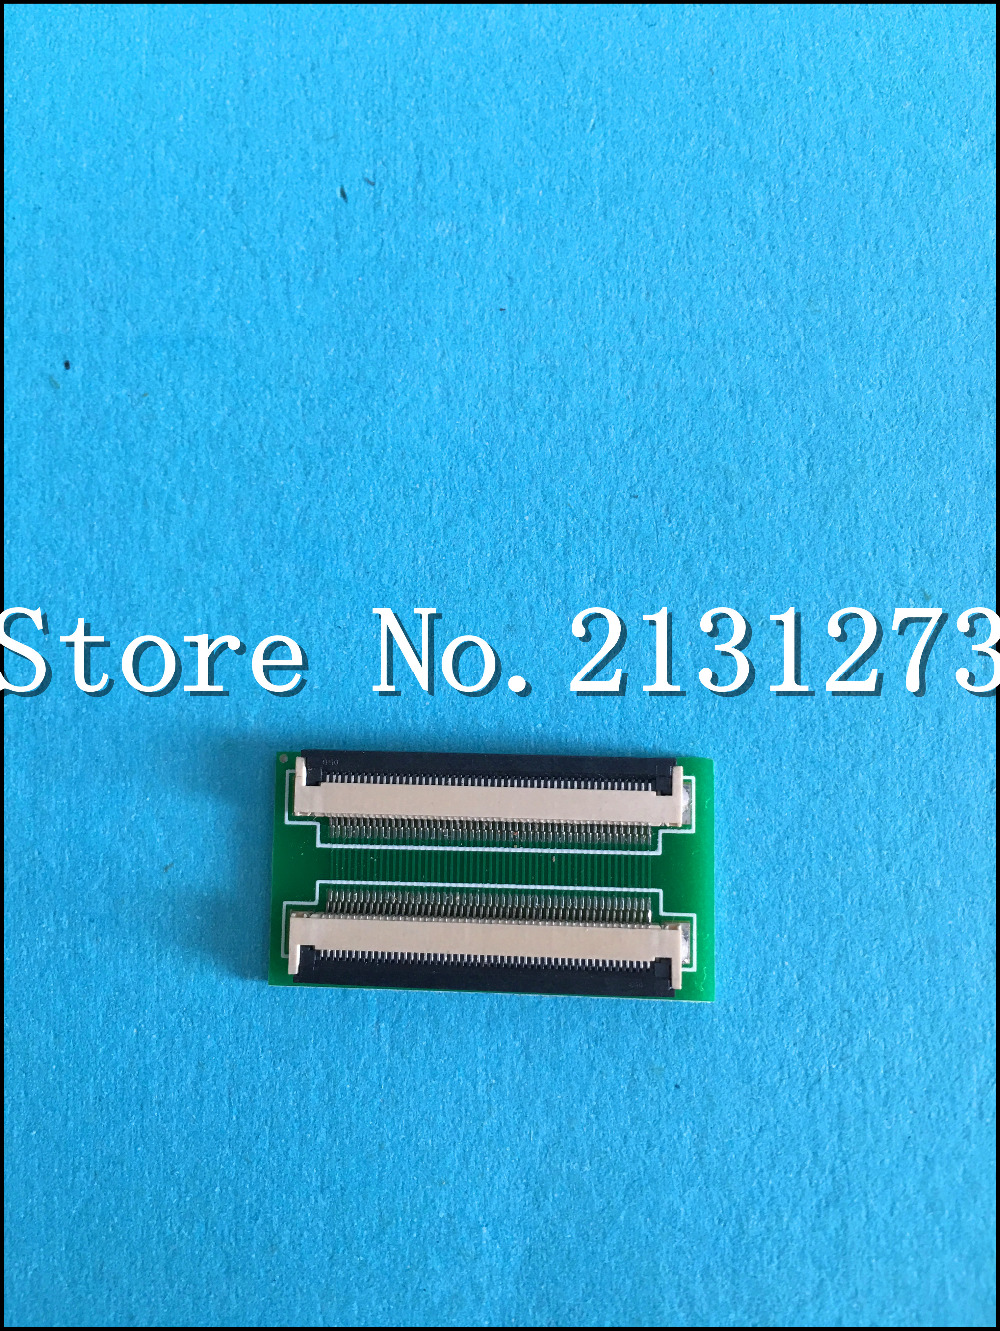 24 Pin to 24 Pin 0.5mm FFC Cable Extension Connector Adapter 5pcs/lot(China (Mainland))